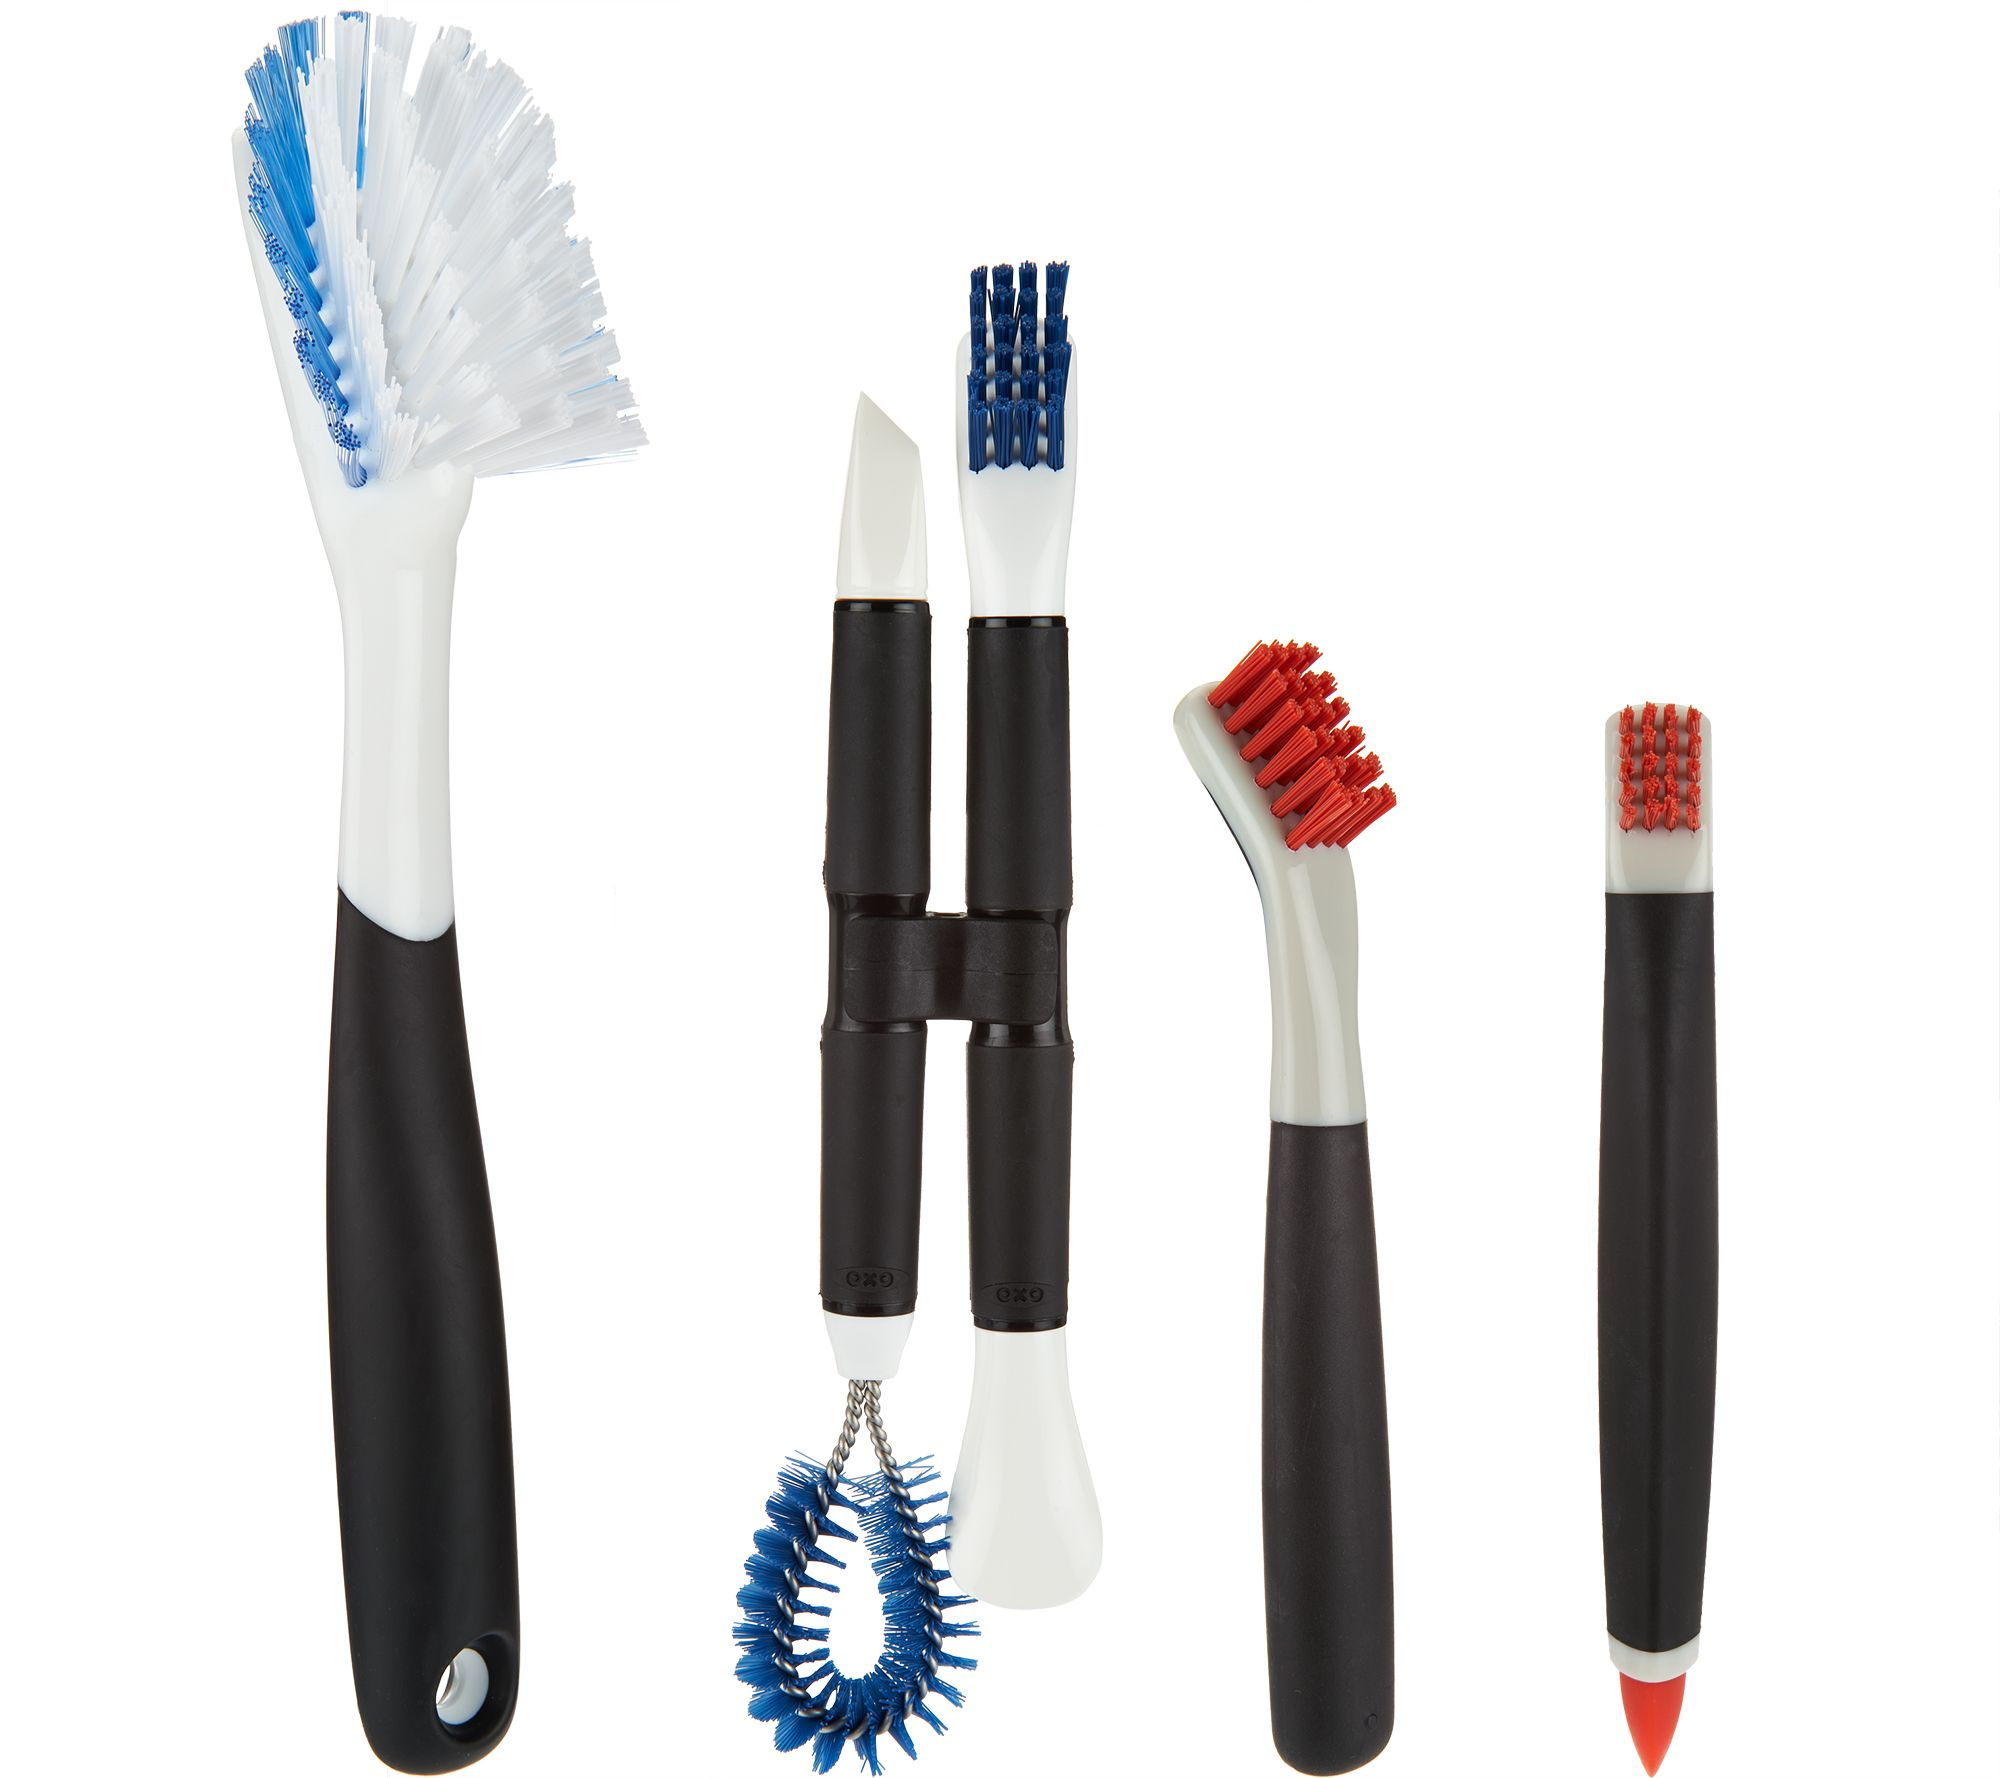 OXO GoodGrips All Purpose Deep Cleaning Brush & Tool Specialty Set ...